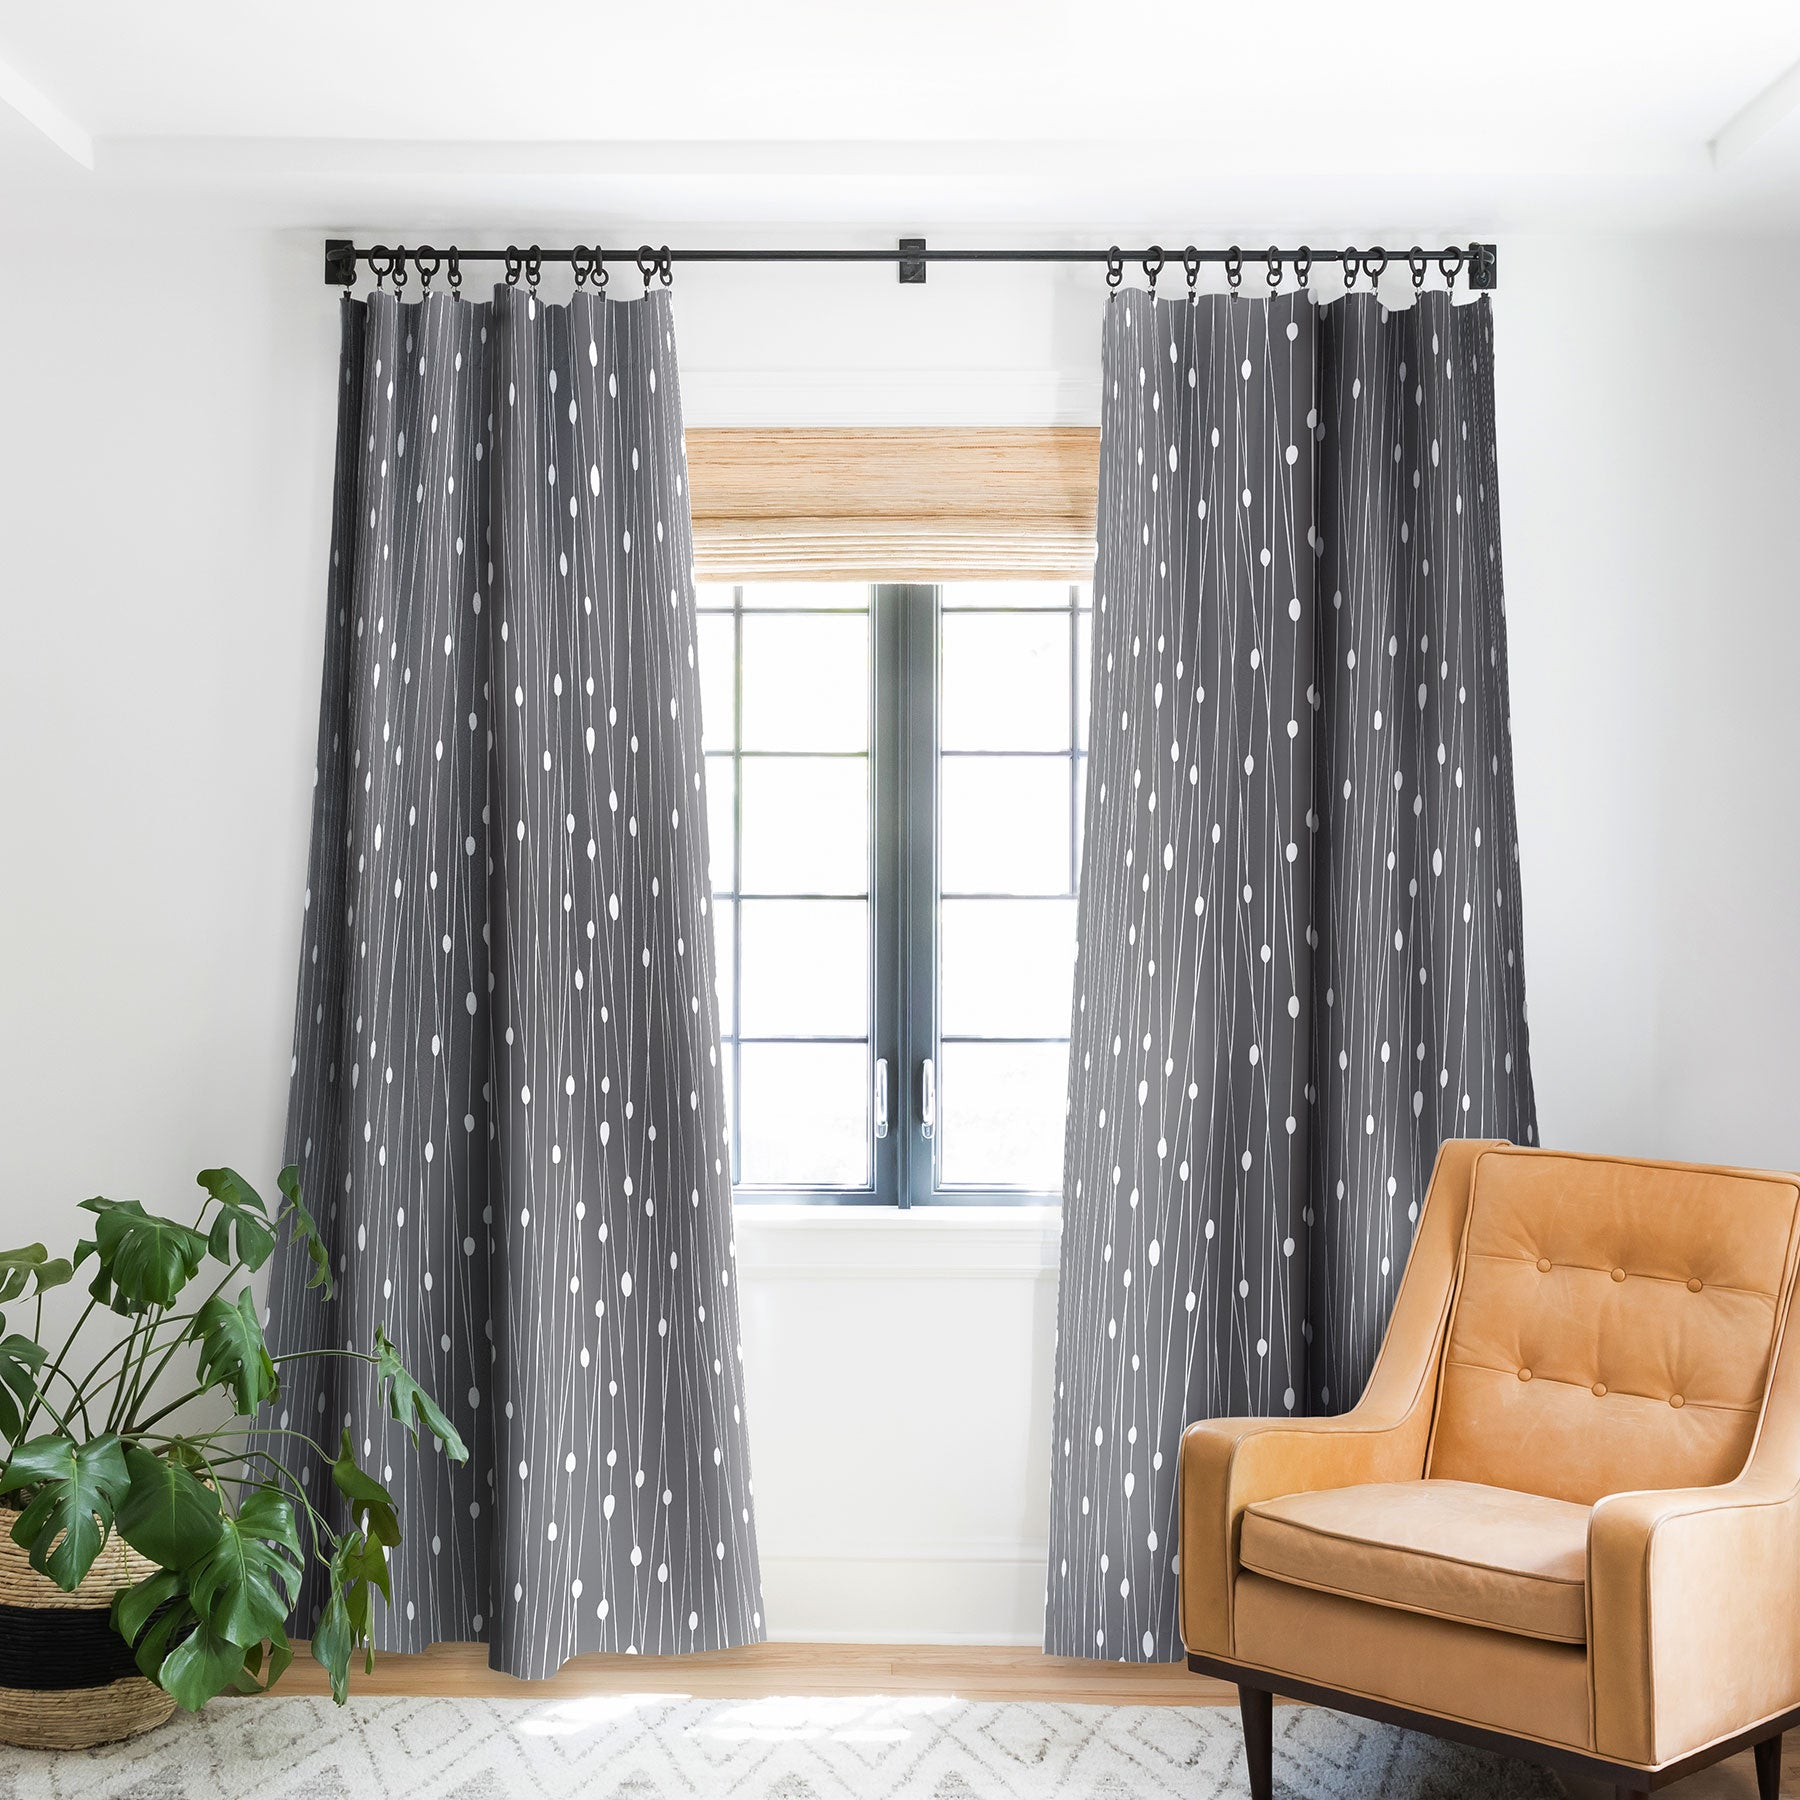 Heather Dutton Gray Entangled Blackout Window Curtain